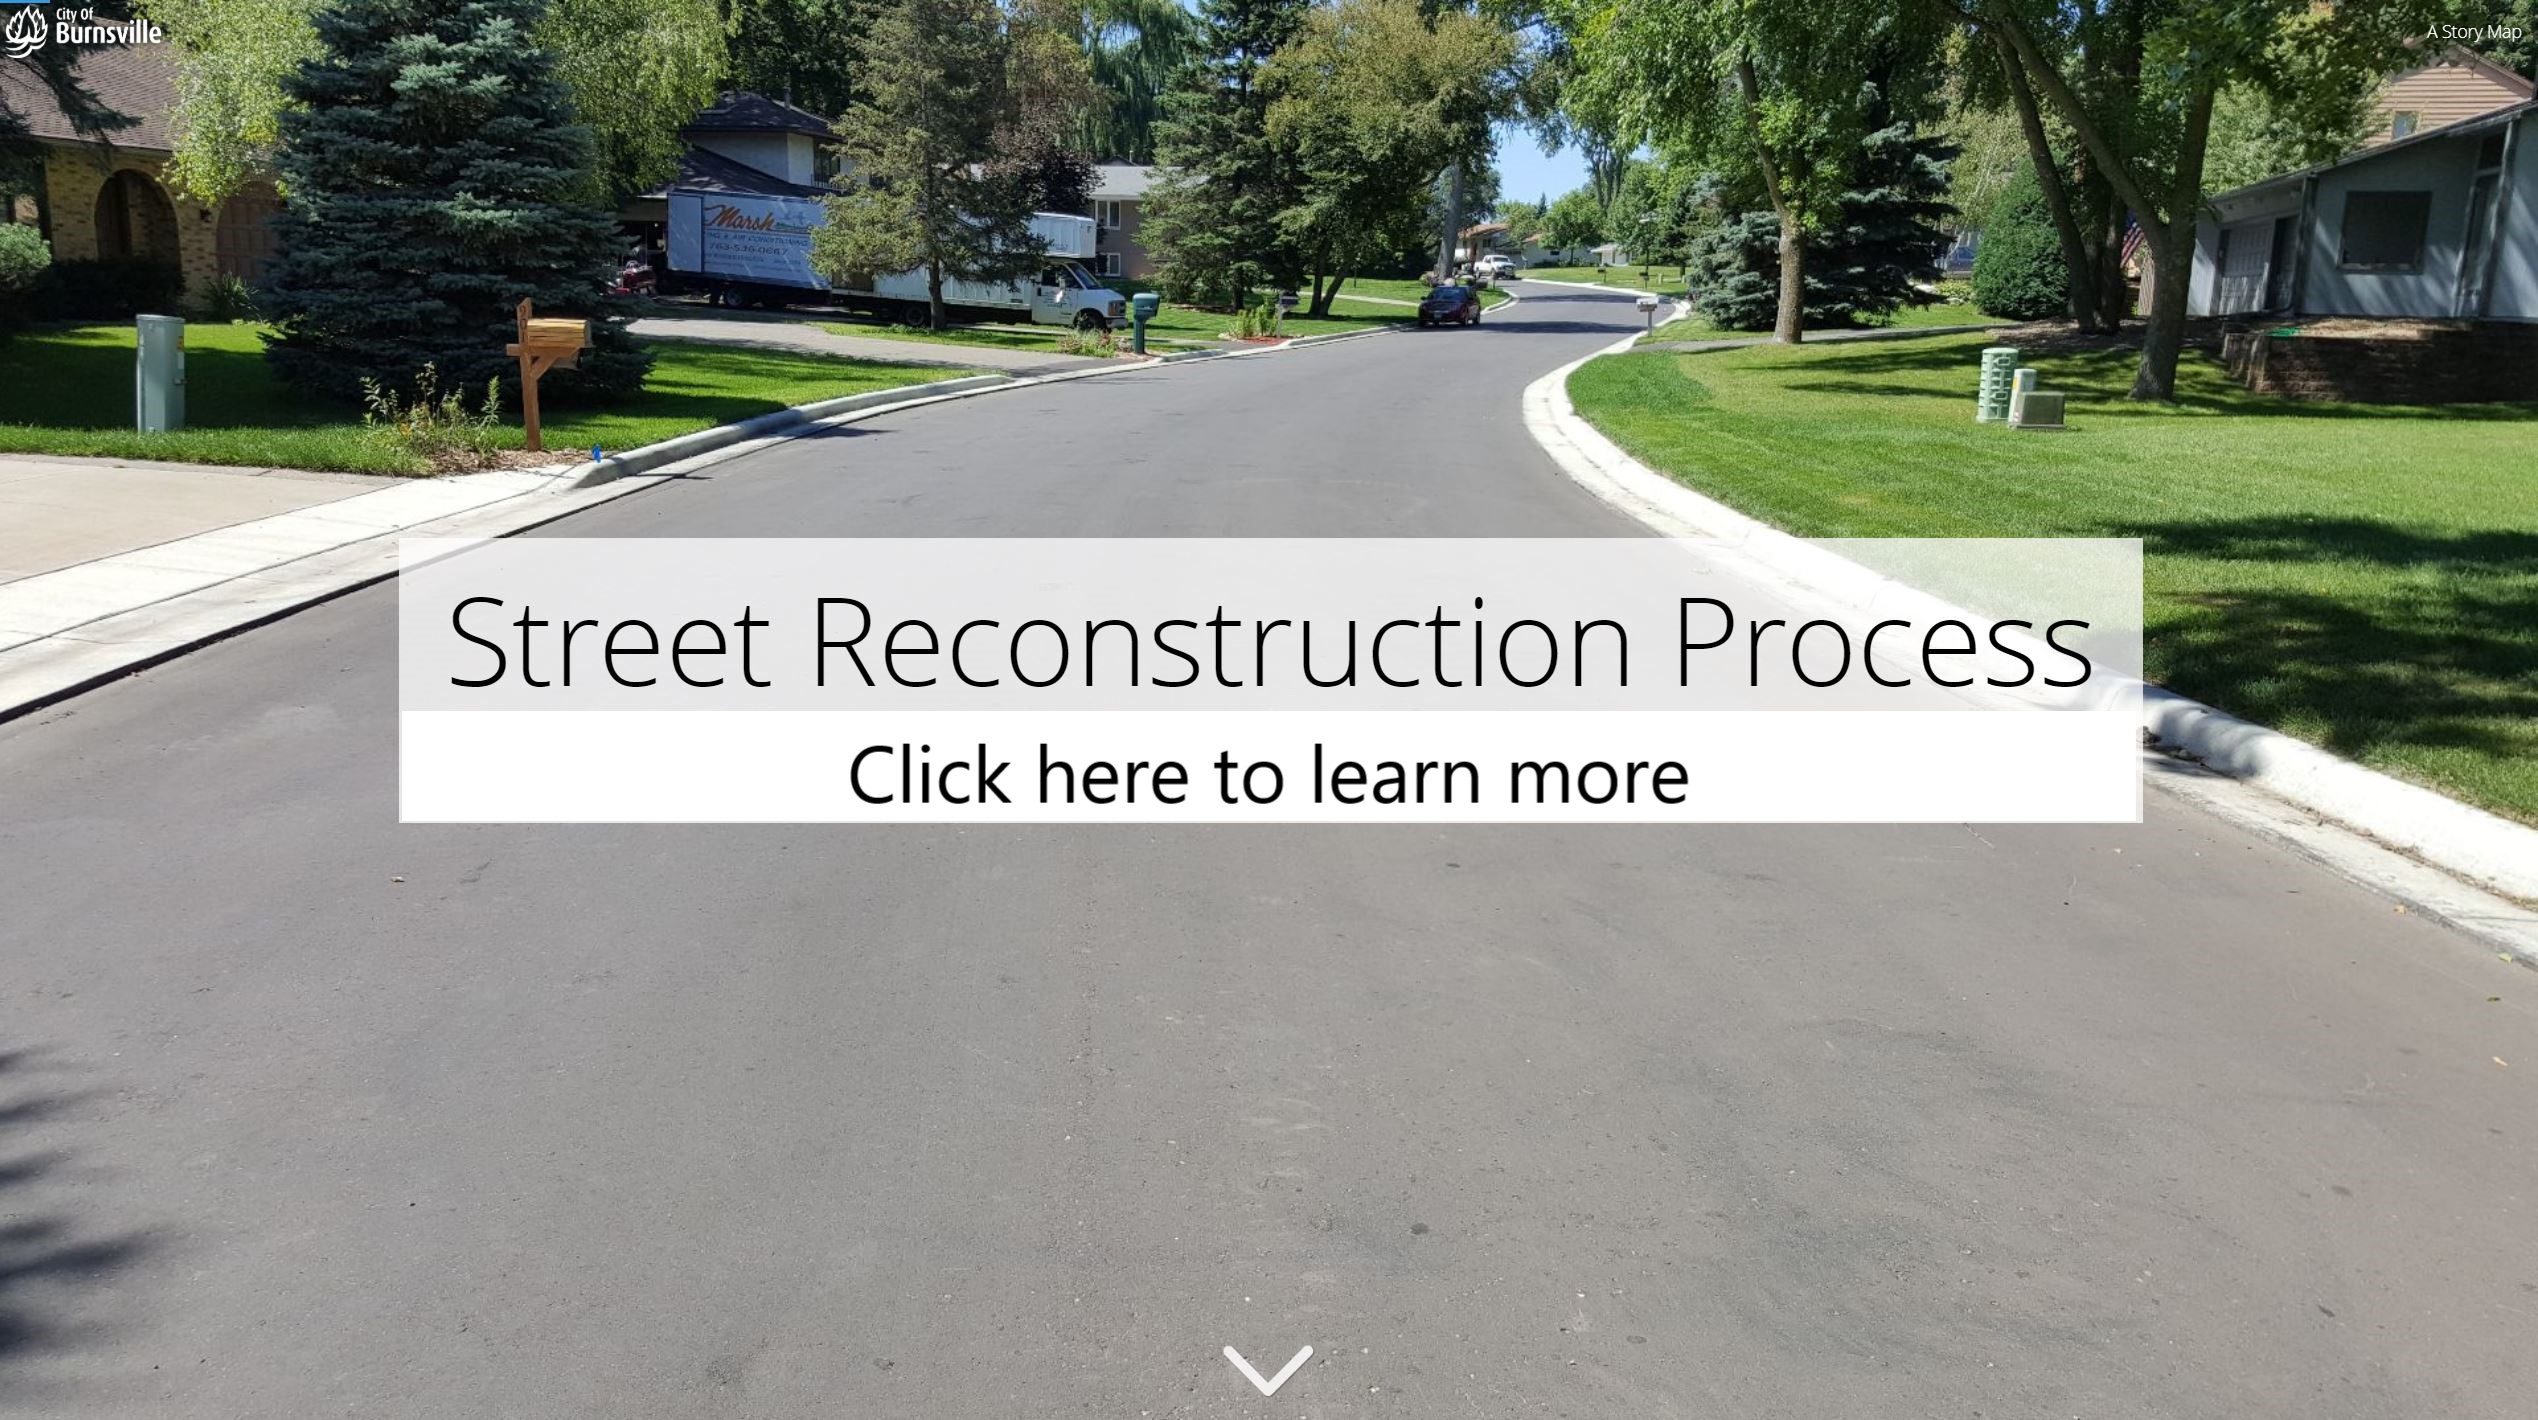 Click here to learn more about the street reconstruction process Opens in new window